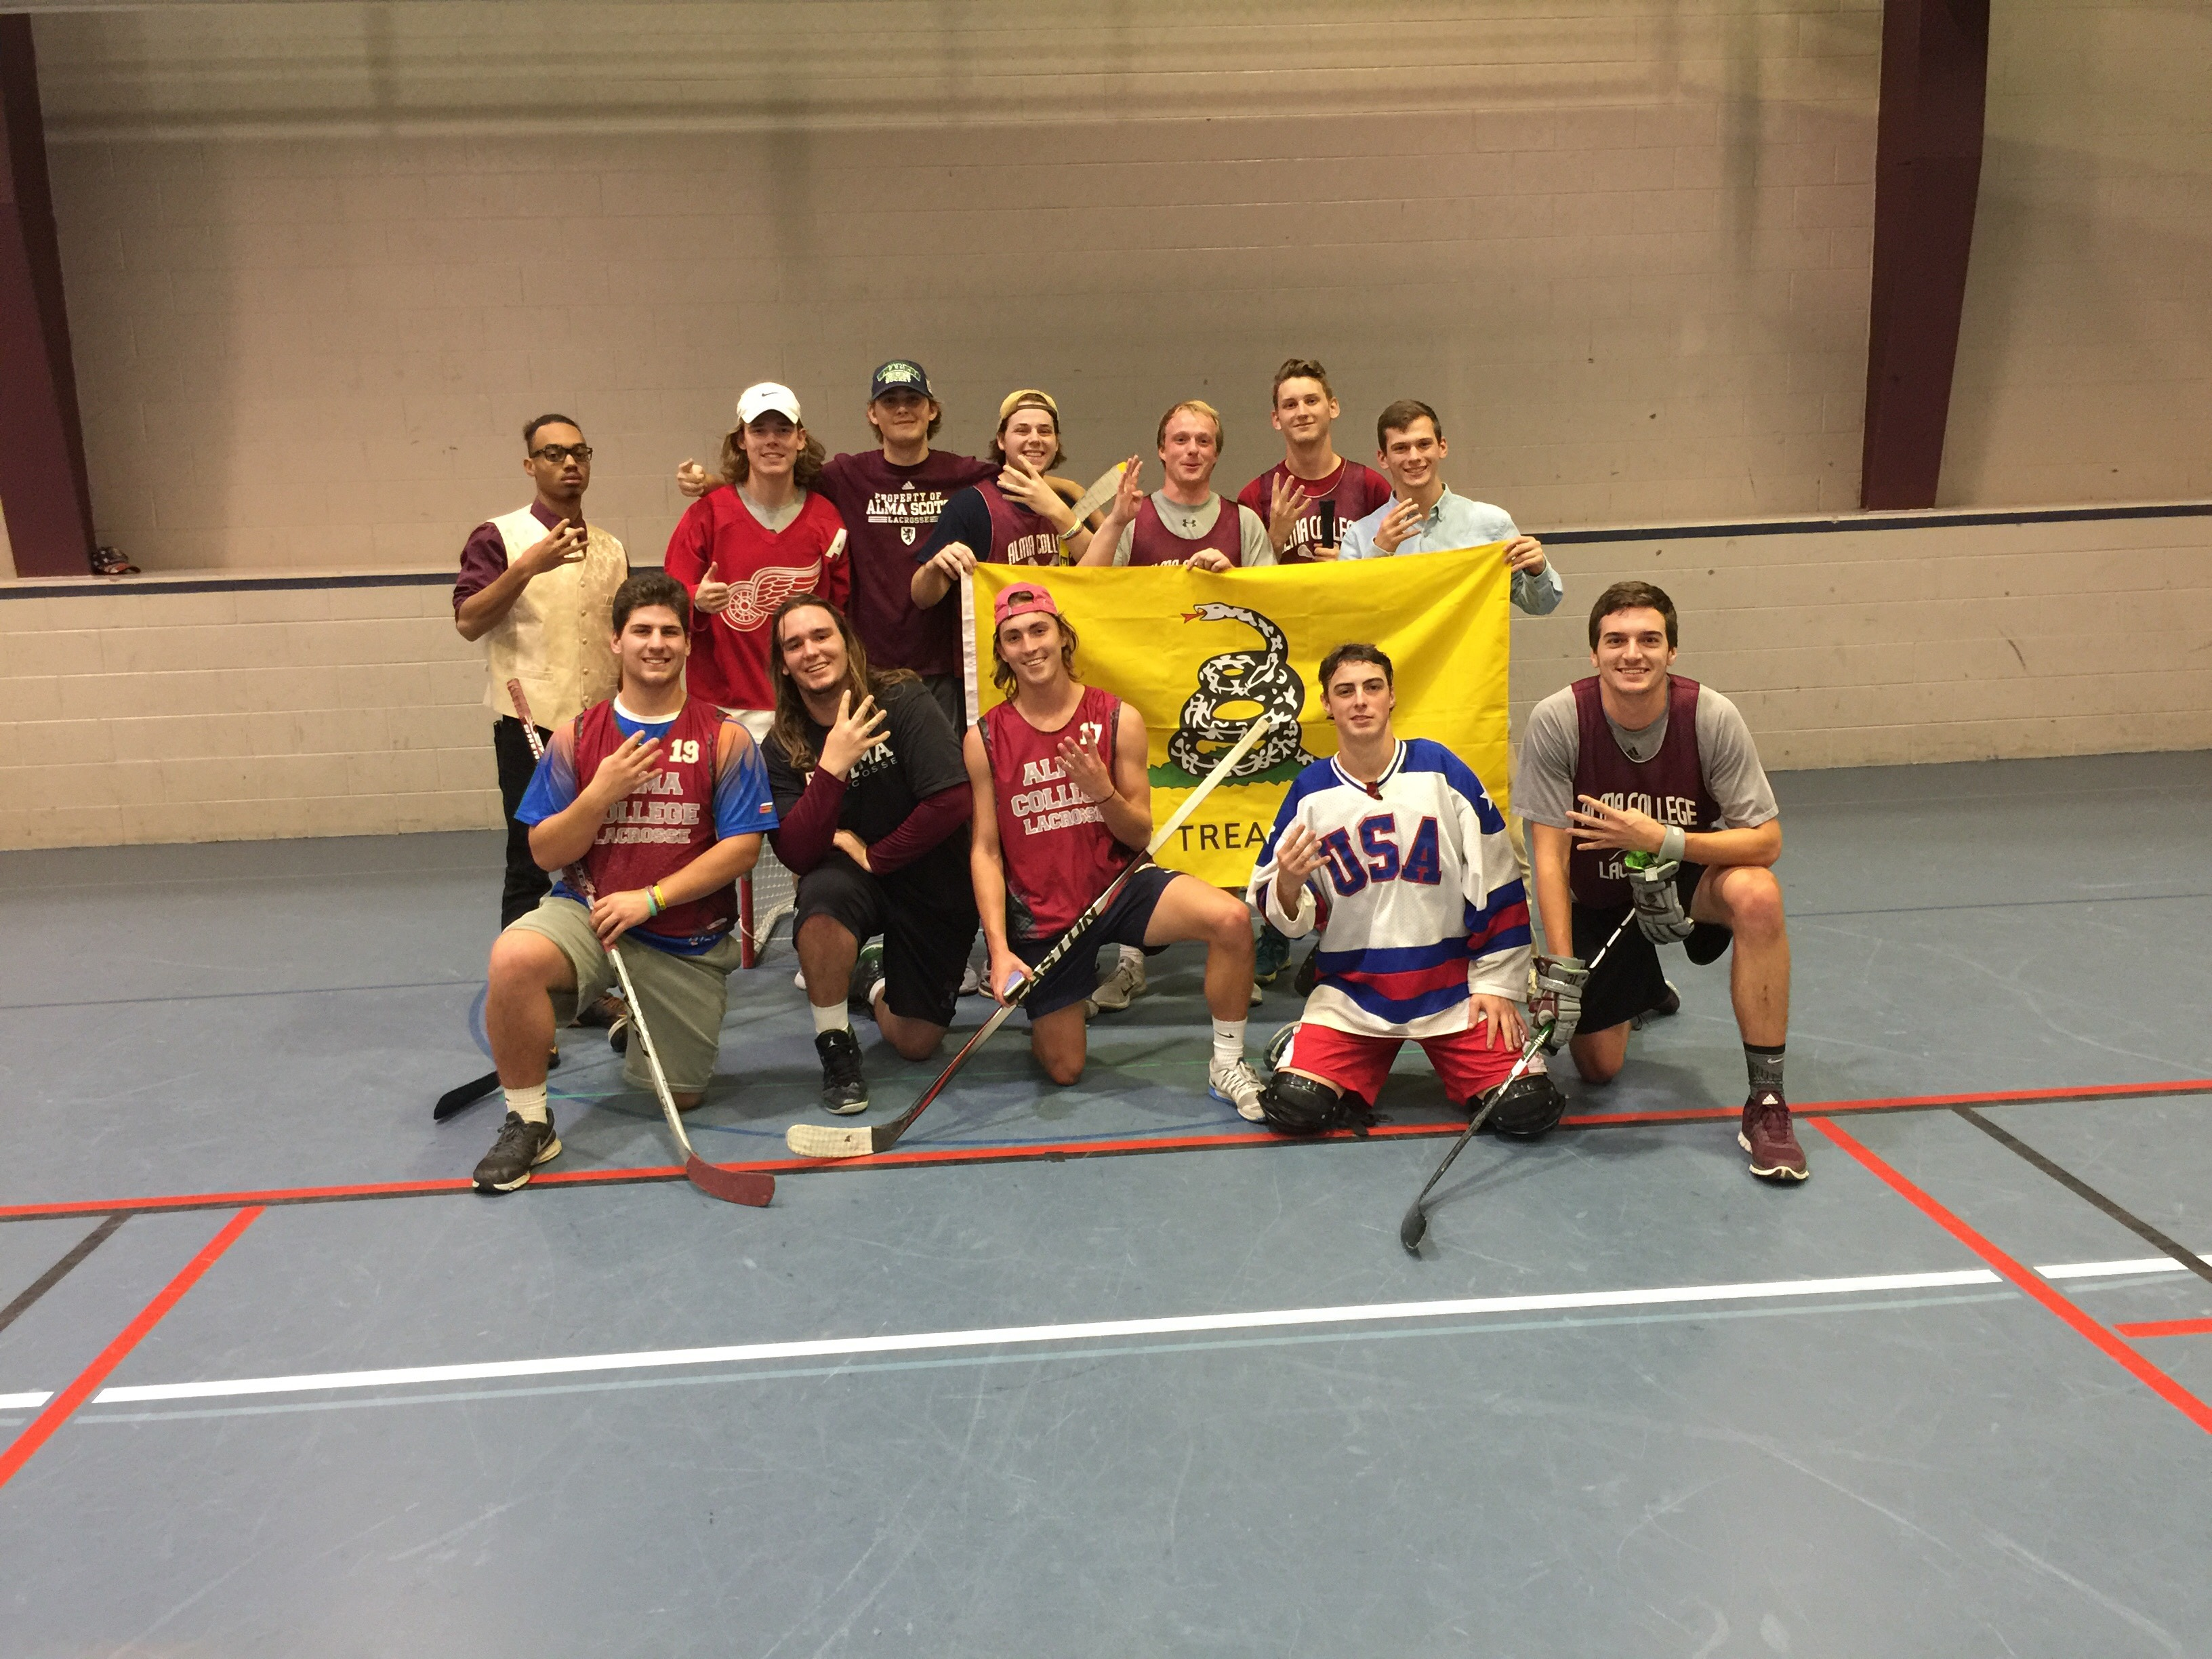 Congrats to the 2016 Floor Hockey Champs!